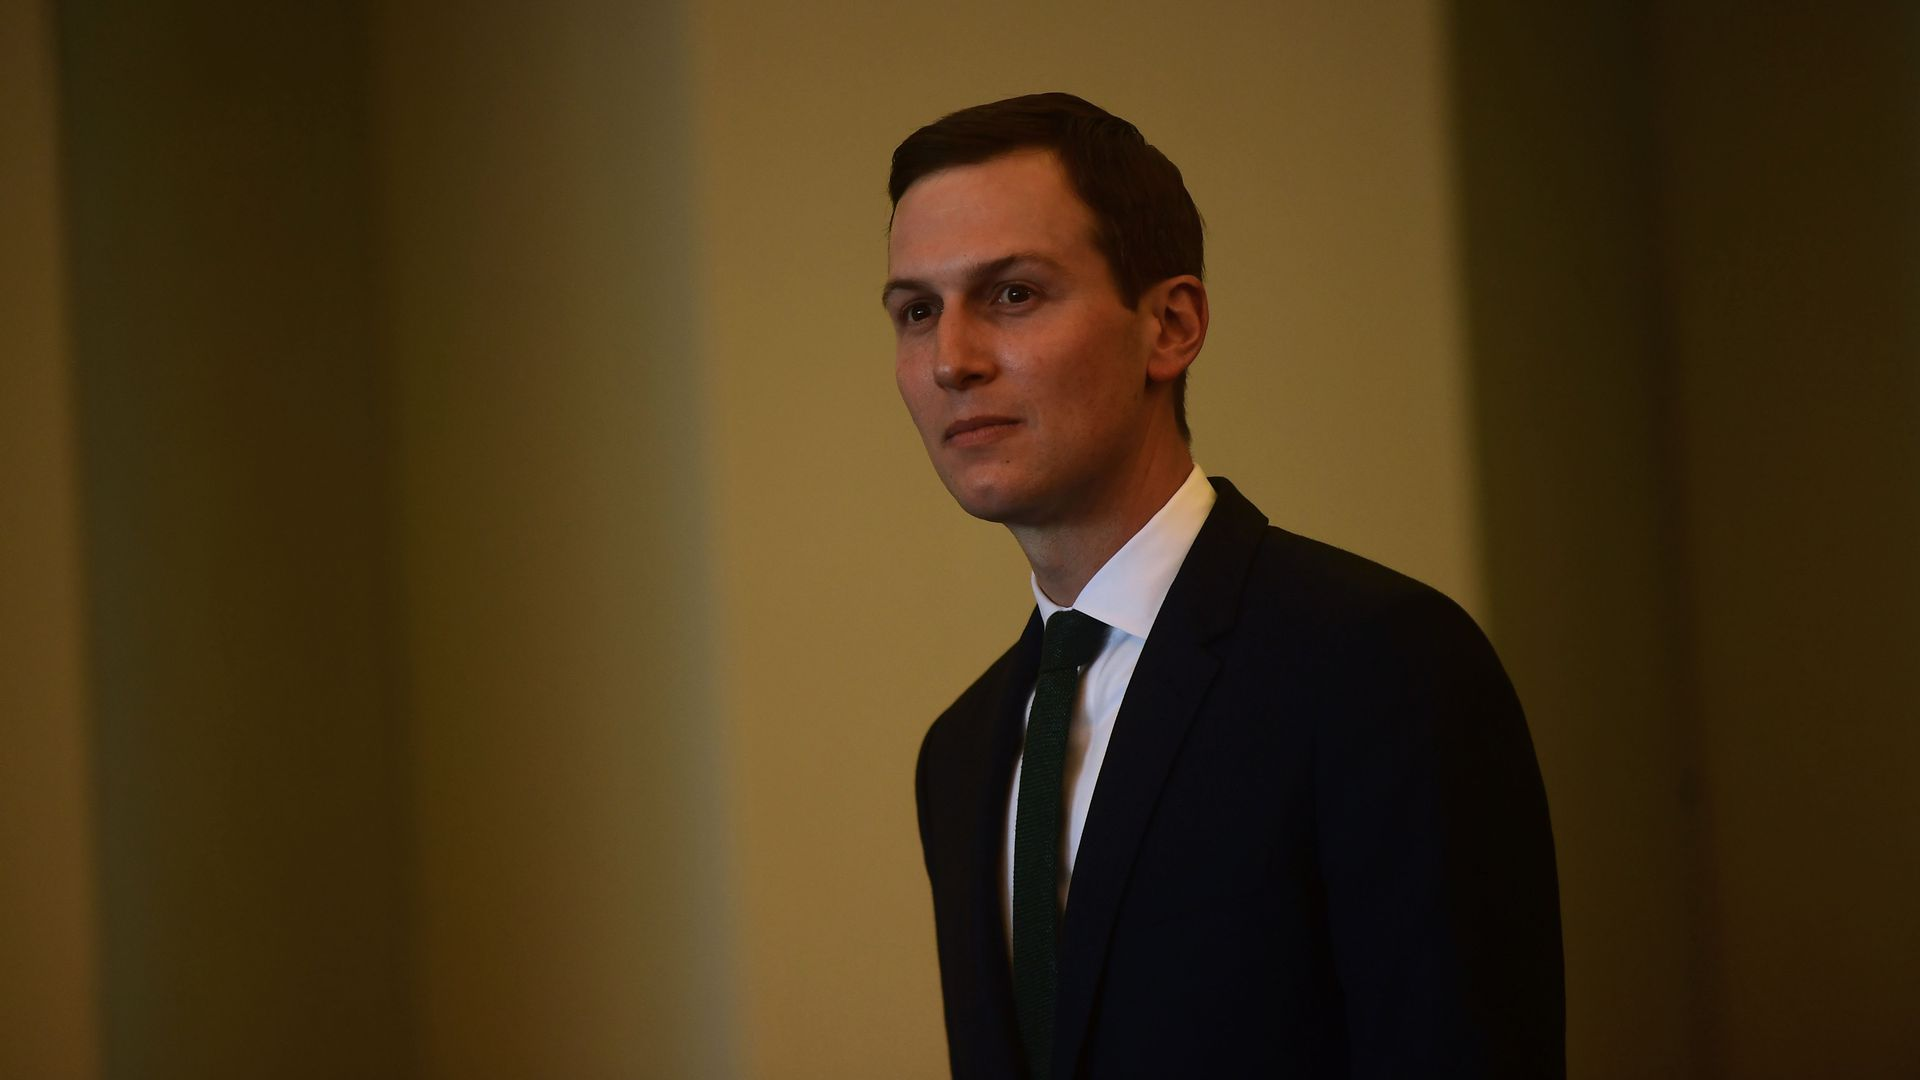 White House advisor Jared Kushner. Photo: Pedro Pardo/AFP/Getty Images